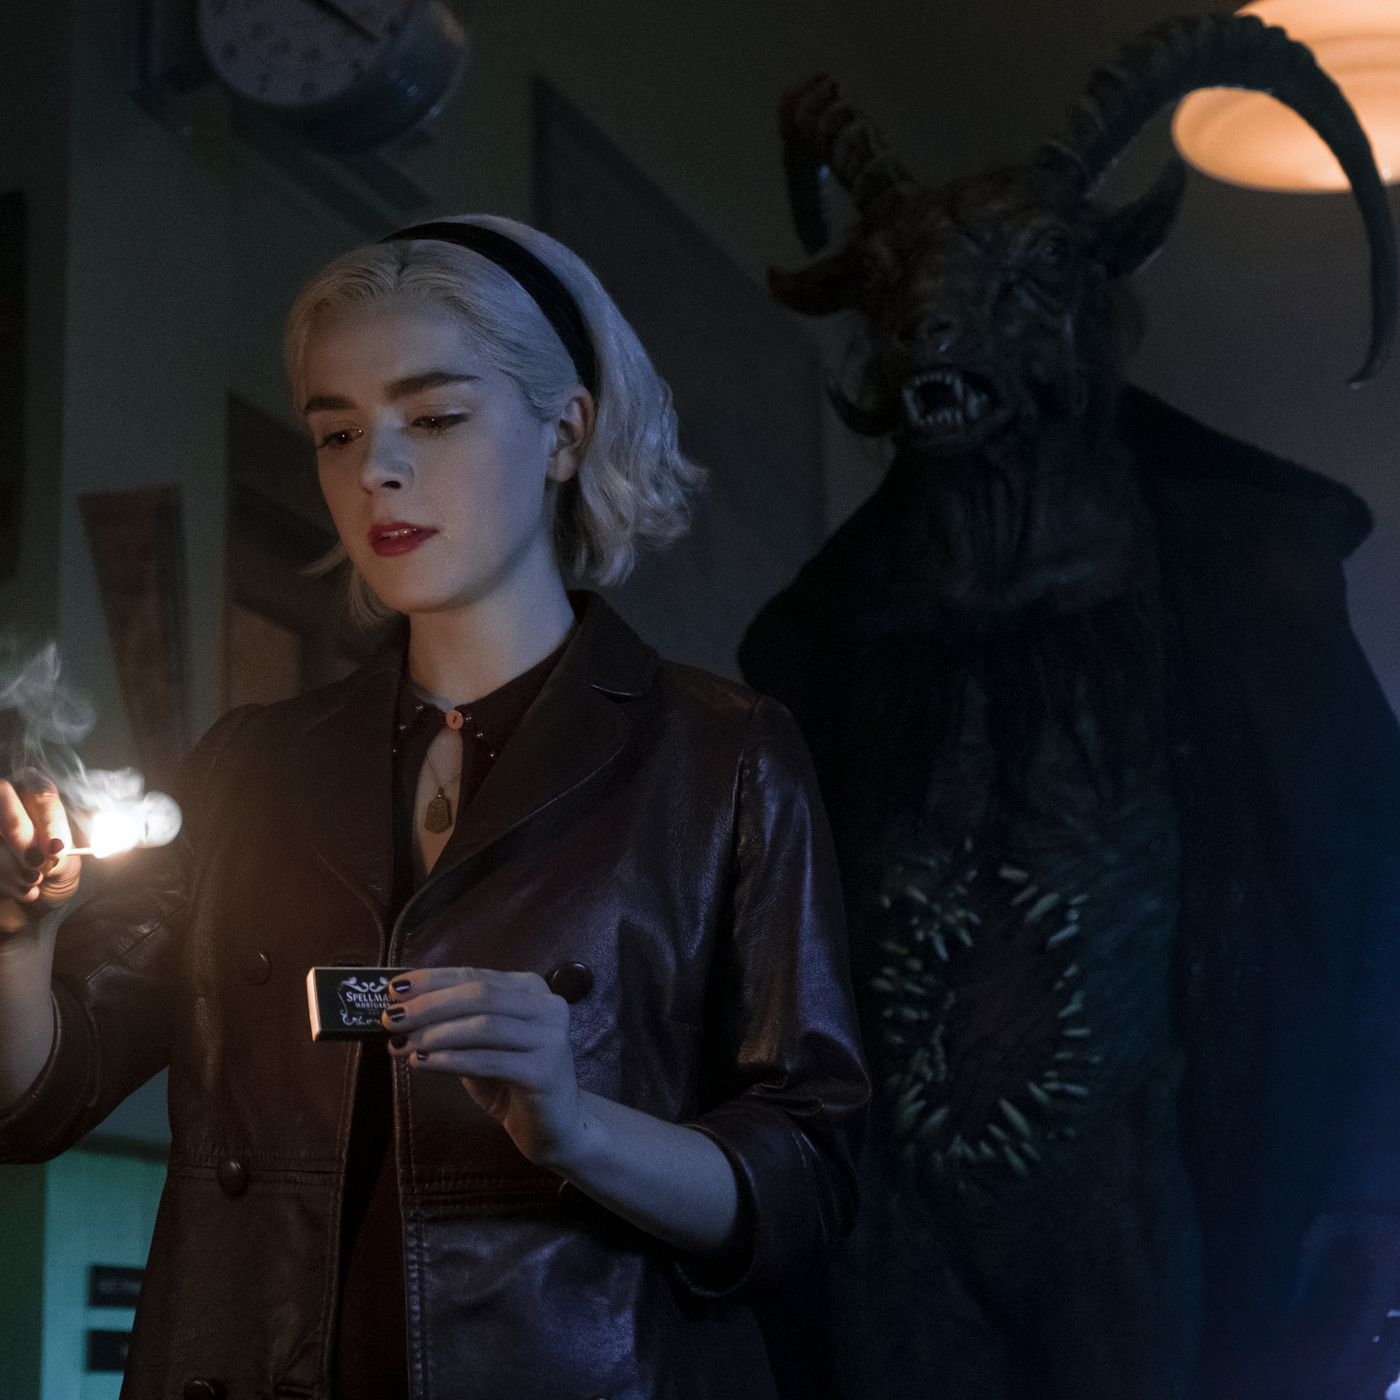 Netflix's Chilling Adventures of Sabrina keeps the Harry Potter